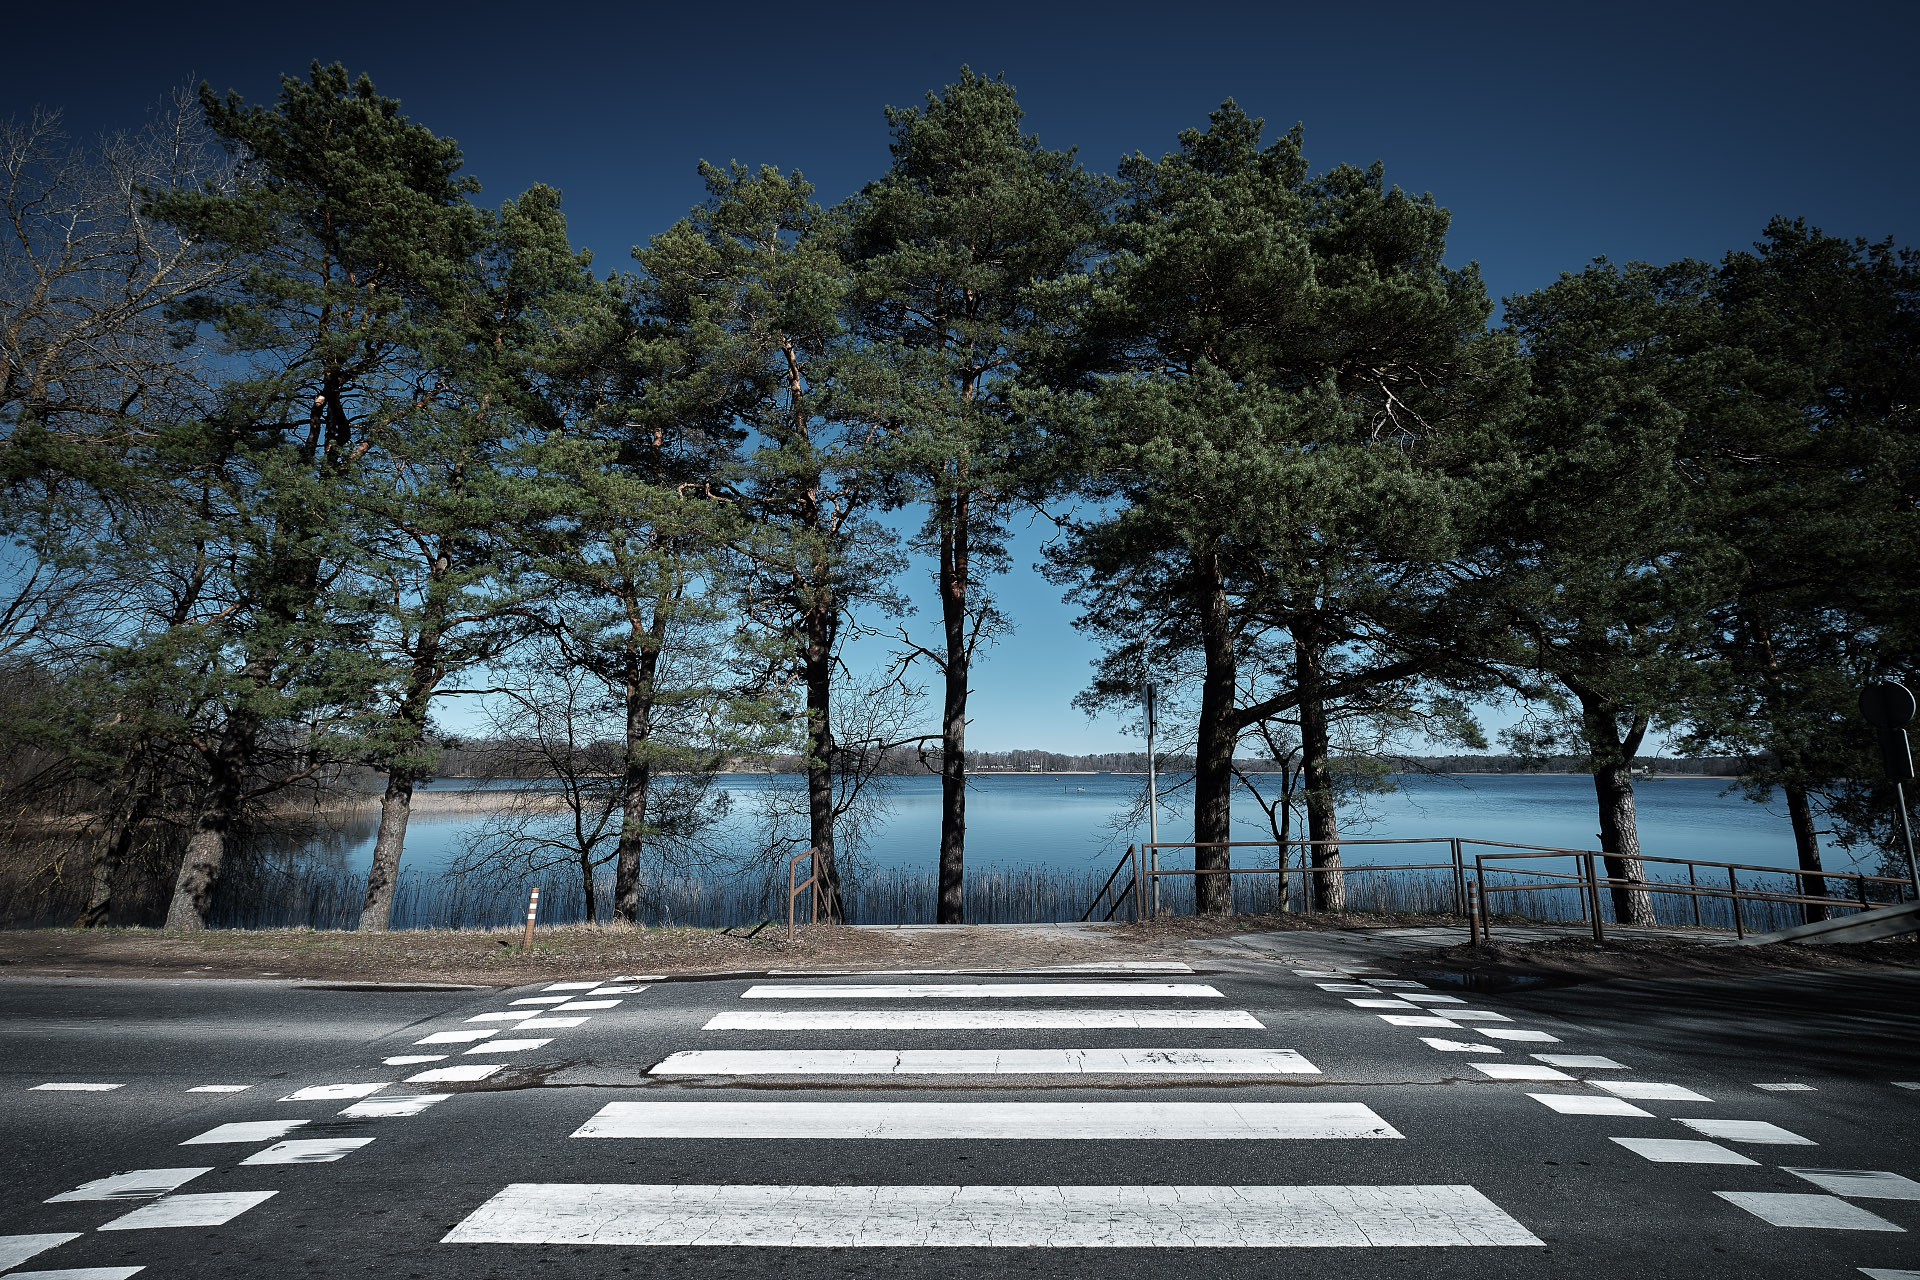 Trakai Crosswalk, Lithuania